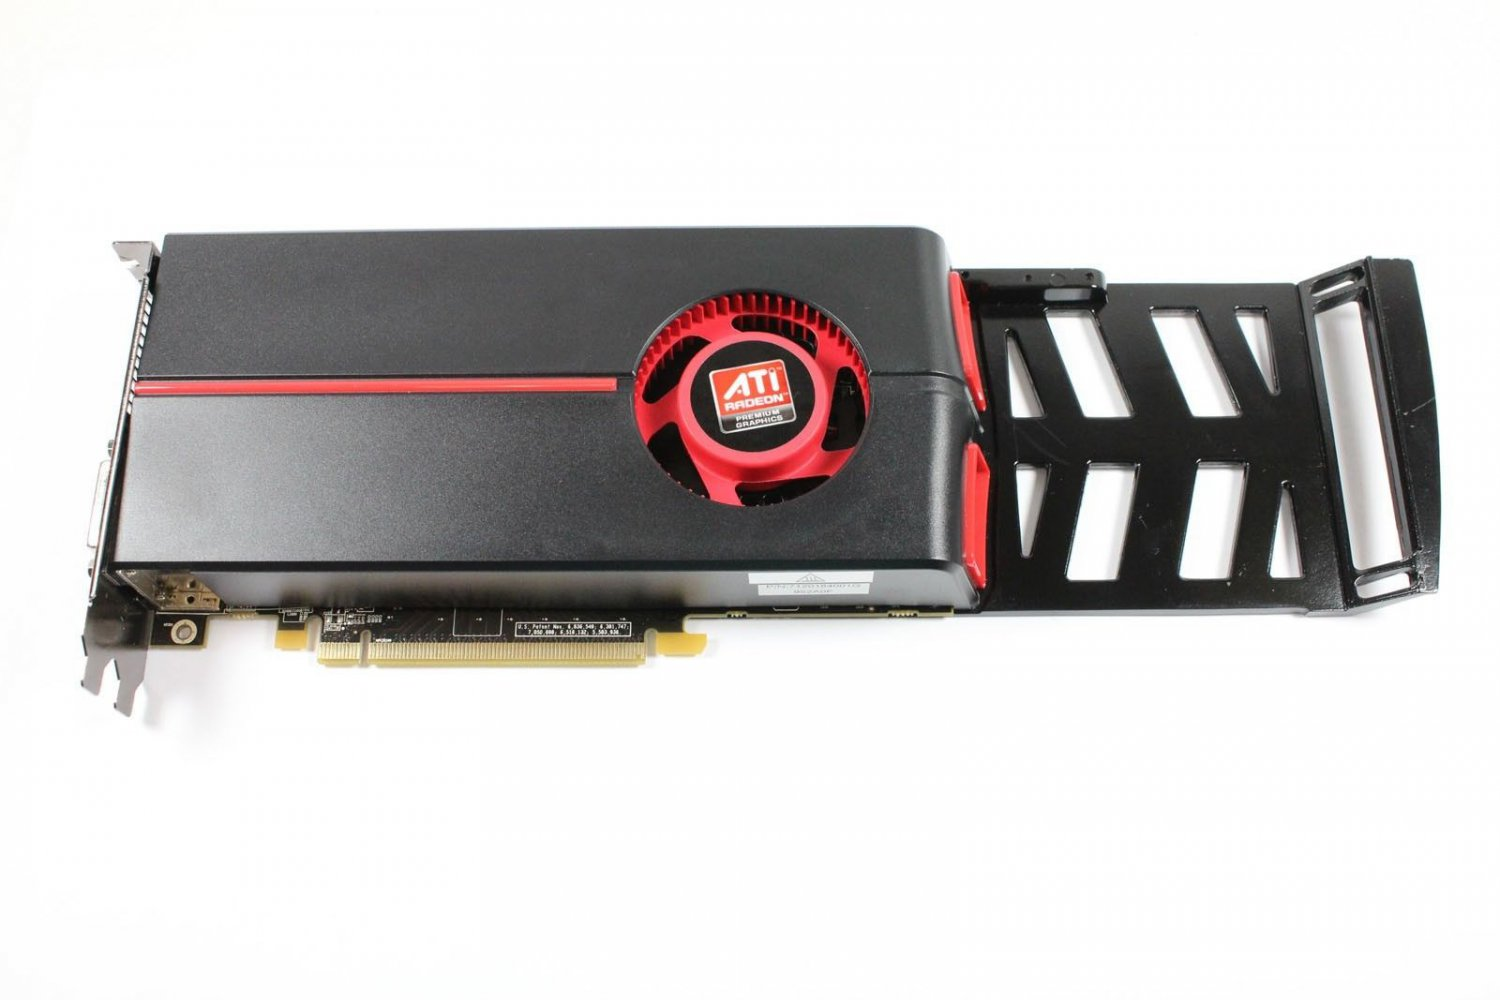 ATI Radeon HD 5770 1GB GDDR5 PCI-E JUNIPER XT Video Card GCJ42